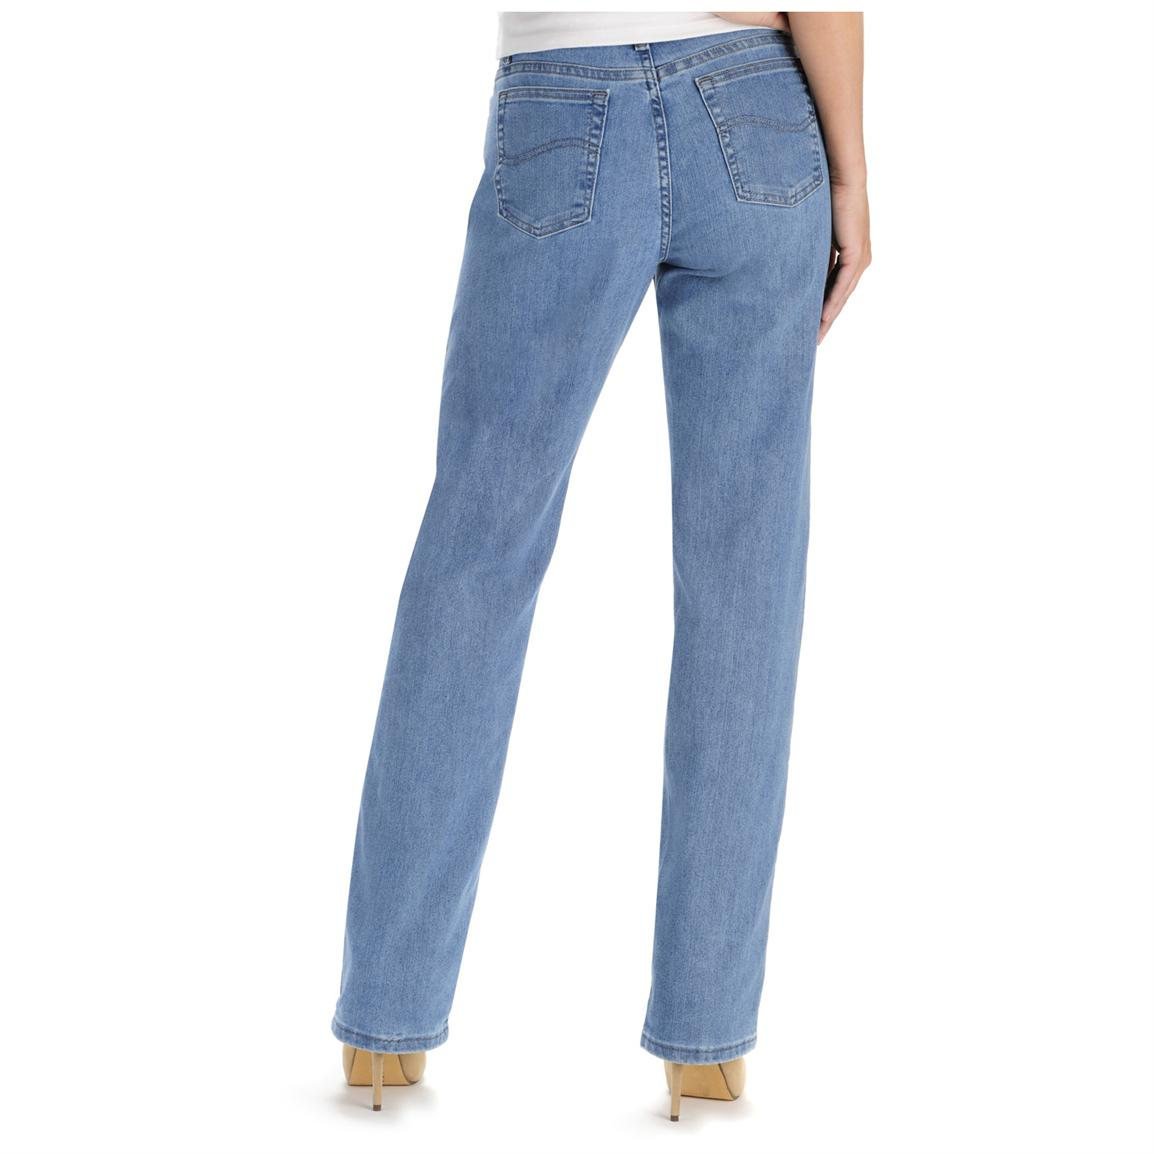 Women's Relaxed Fit Jeans